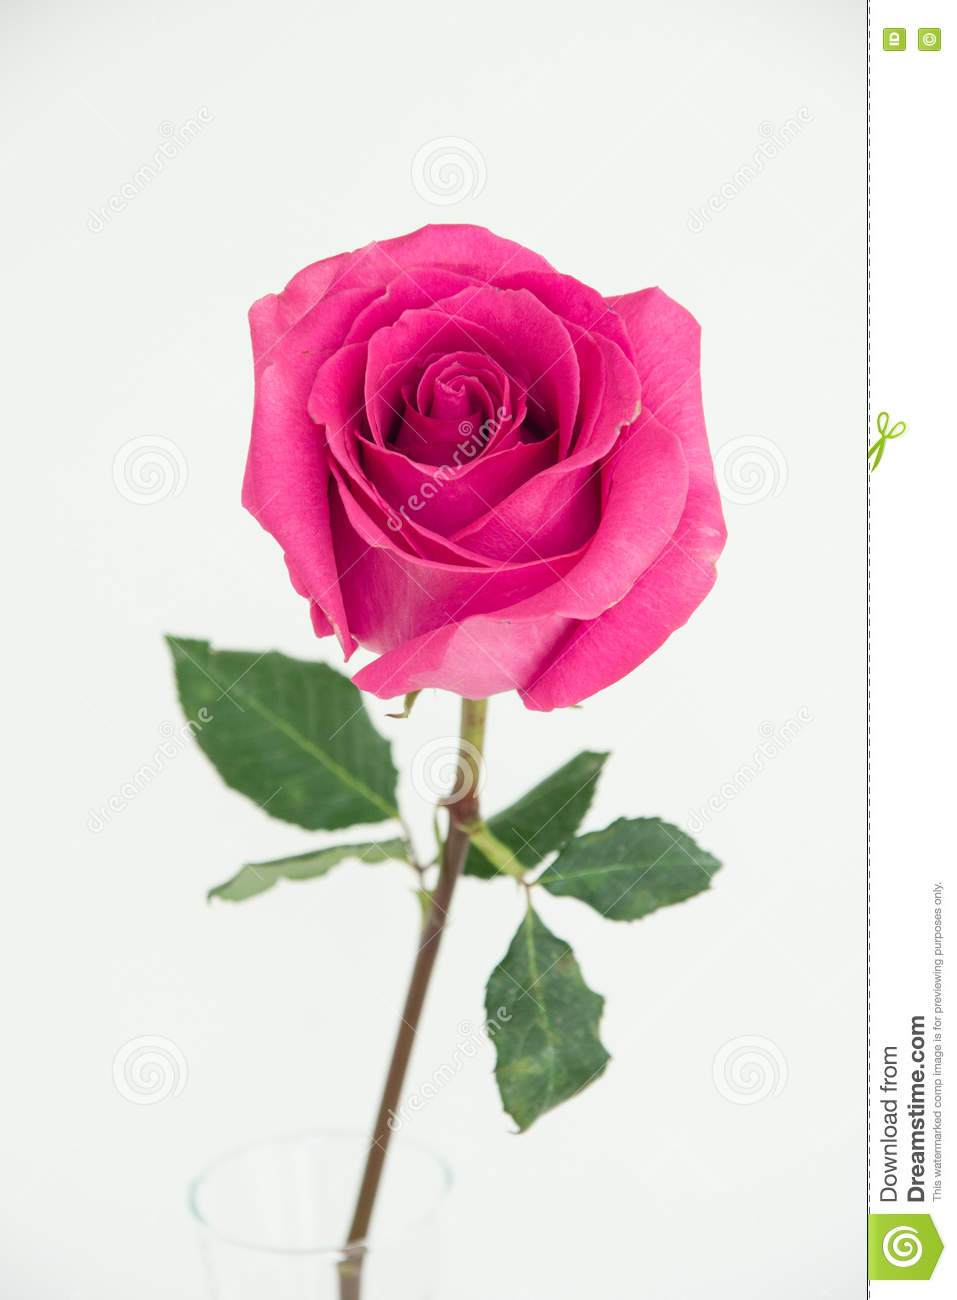 One pink rose picture